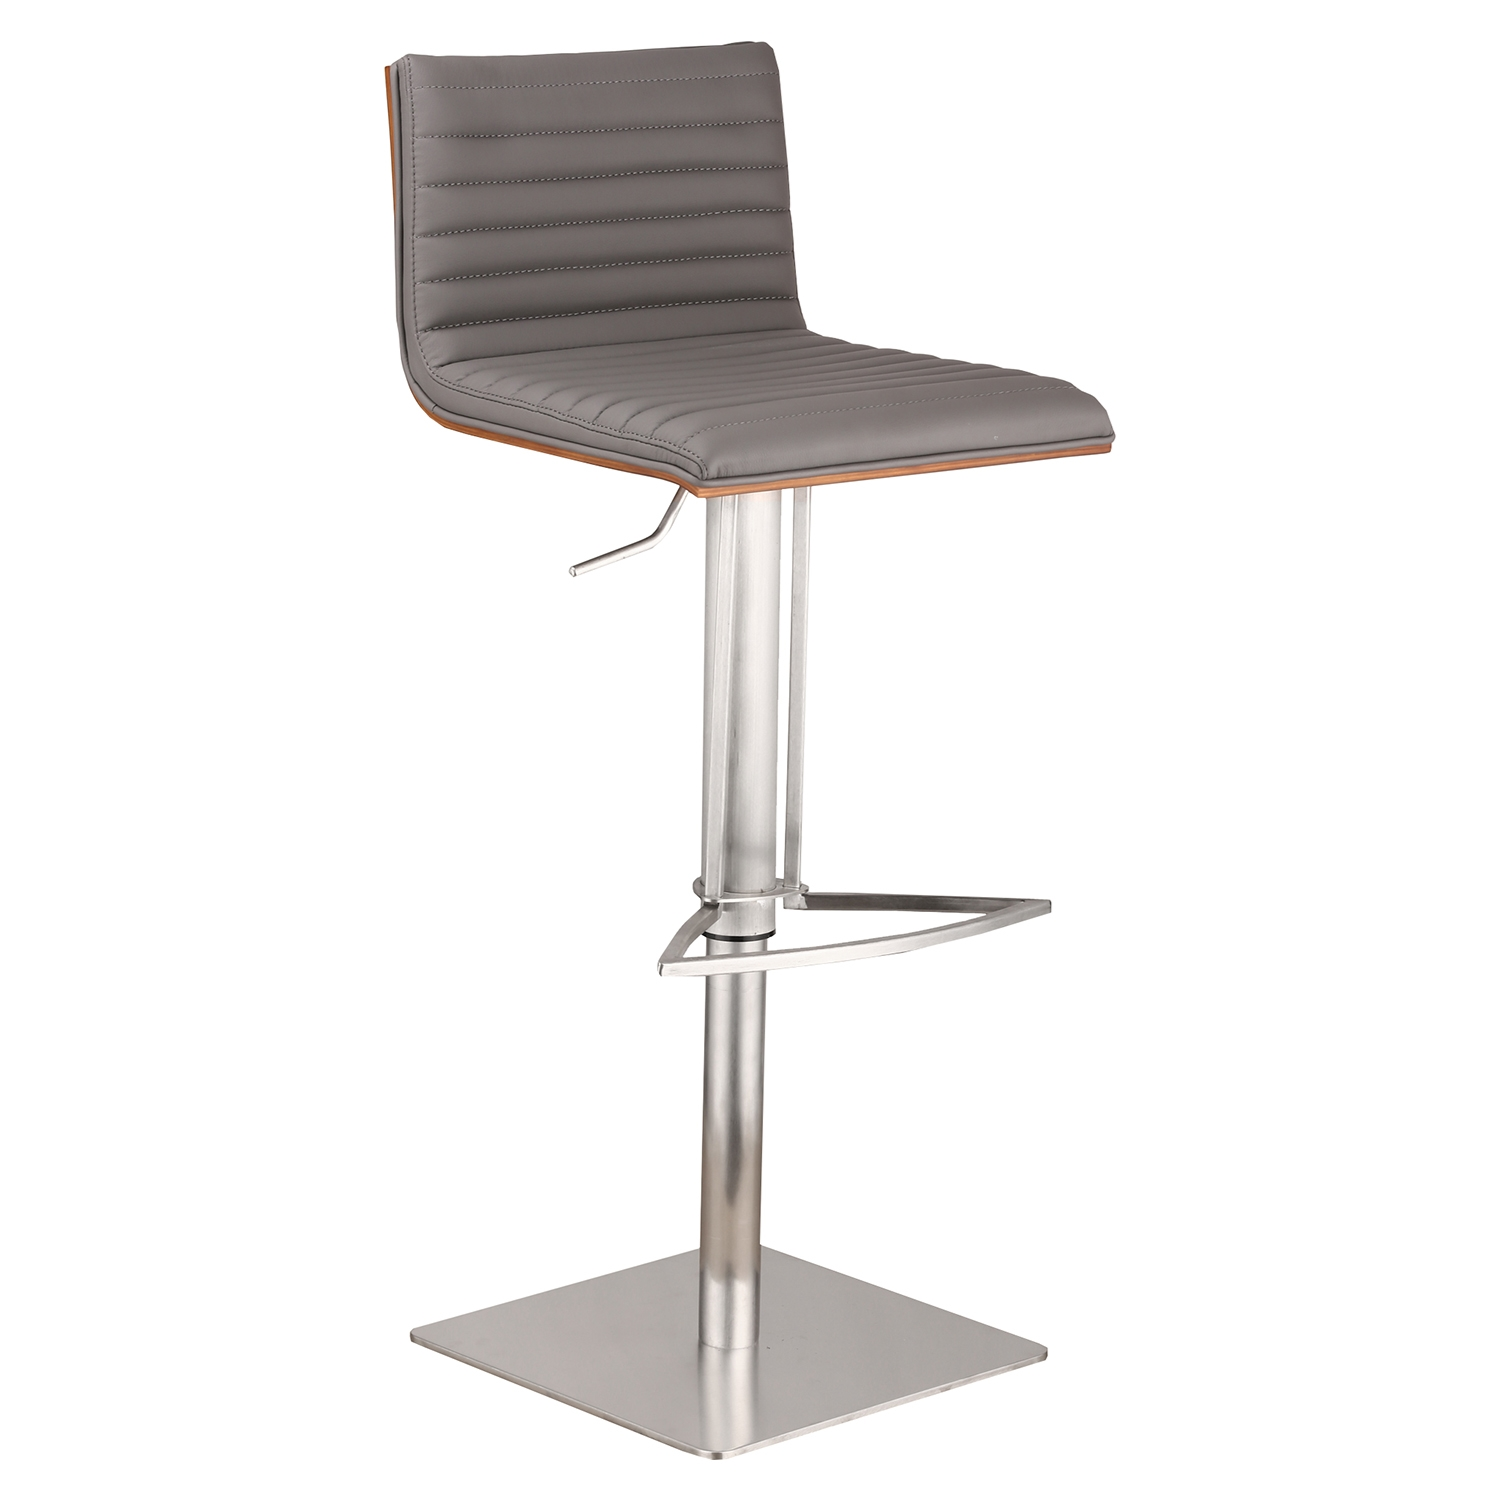 Cafe Adjustable Barstool - Gray, Walnut Back, Brushed Stainless Steel - AL-LCCASWBAGRB201